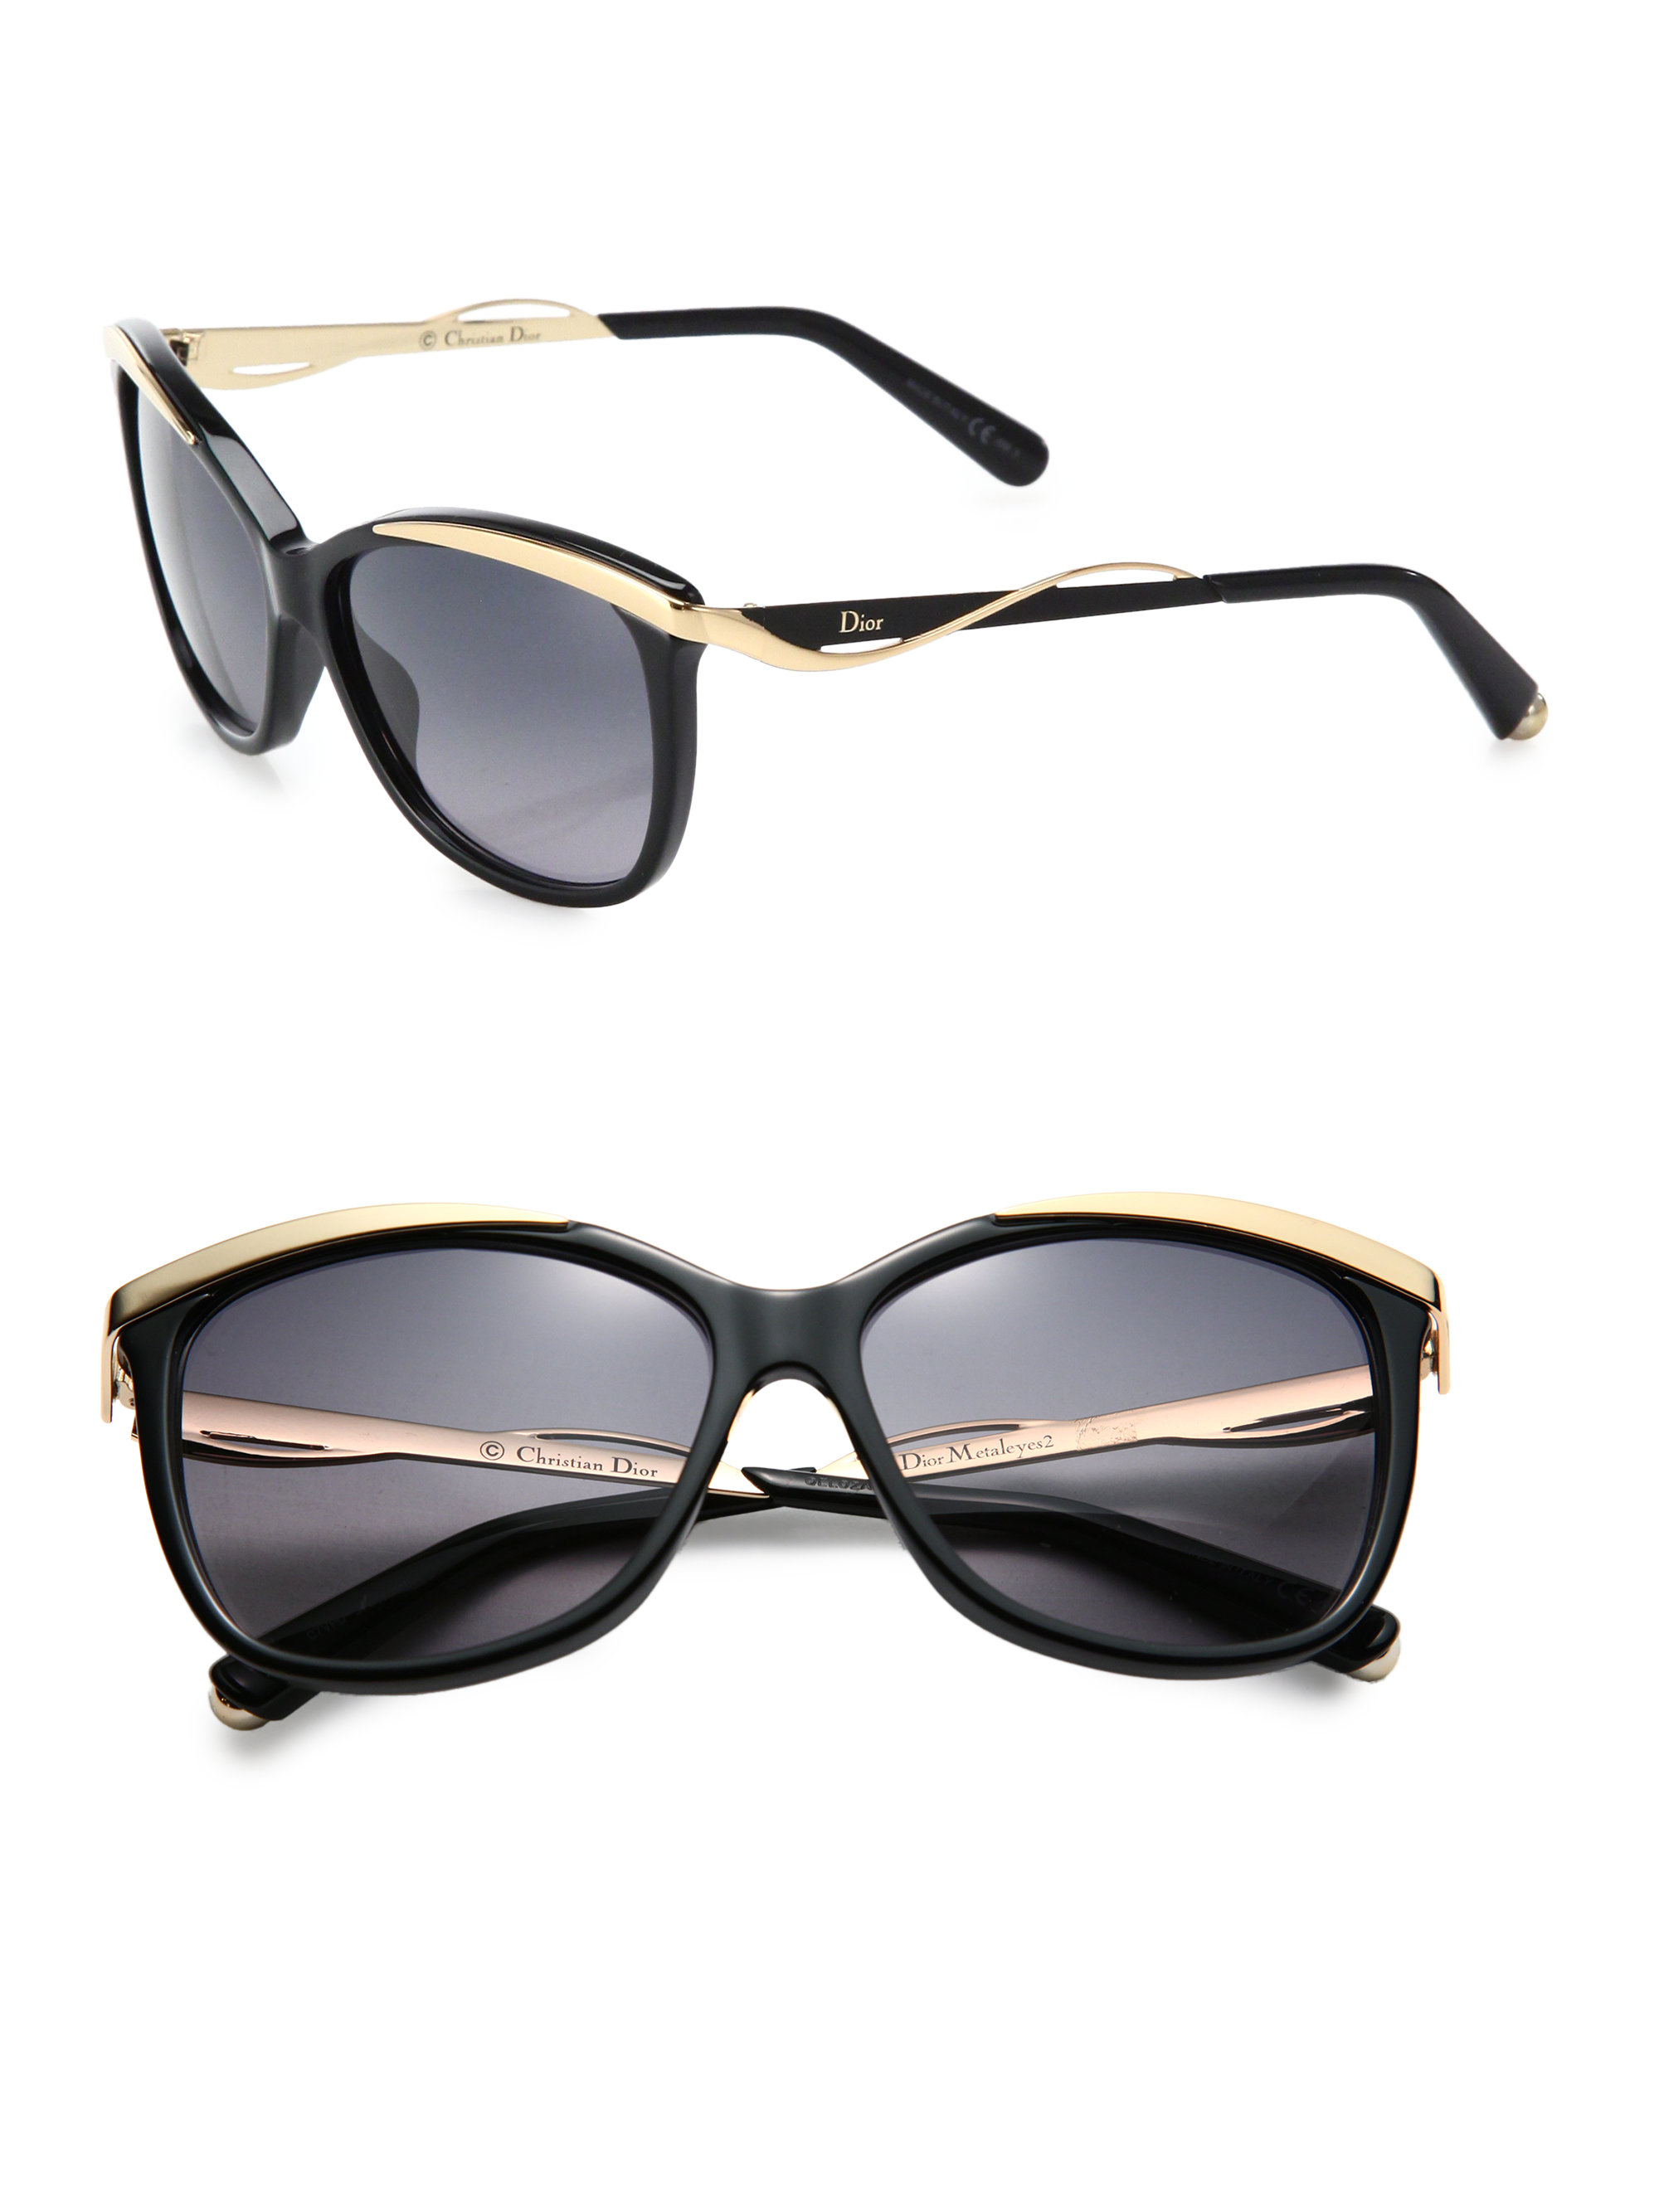 f2eb860a6f Dior Sunglasses Cat Eye 2015